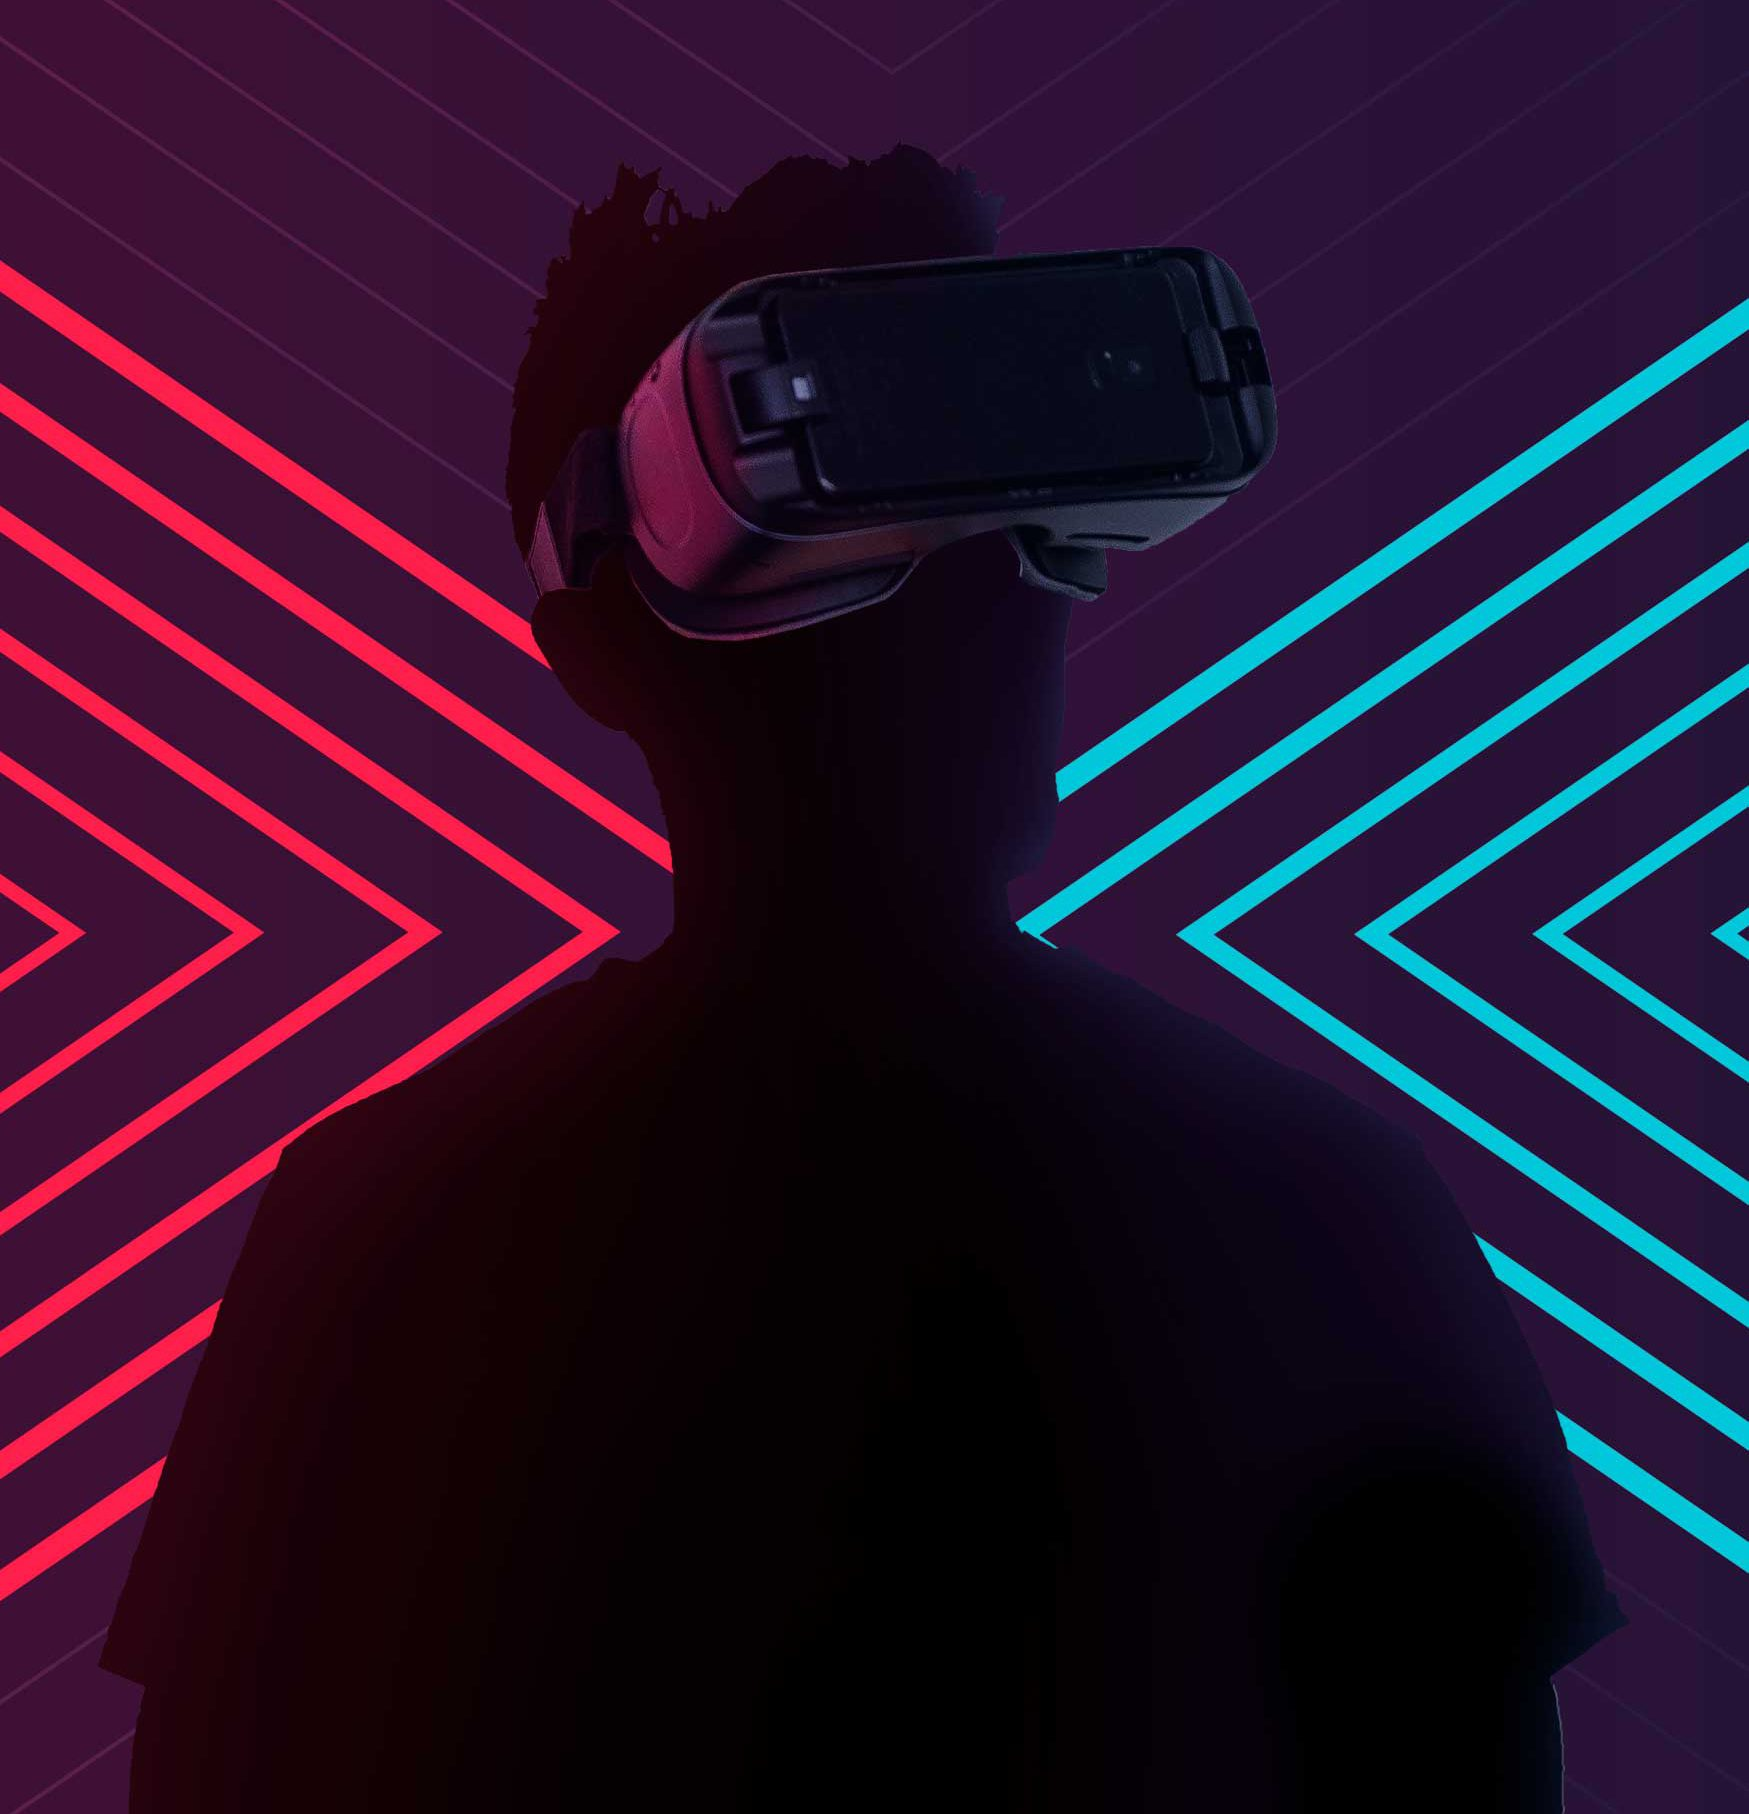 Easy VR. Curso de Introducción a la realidad virtual